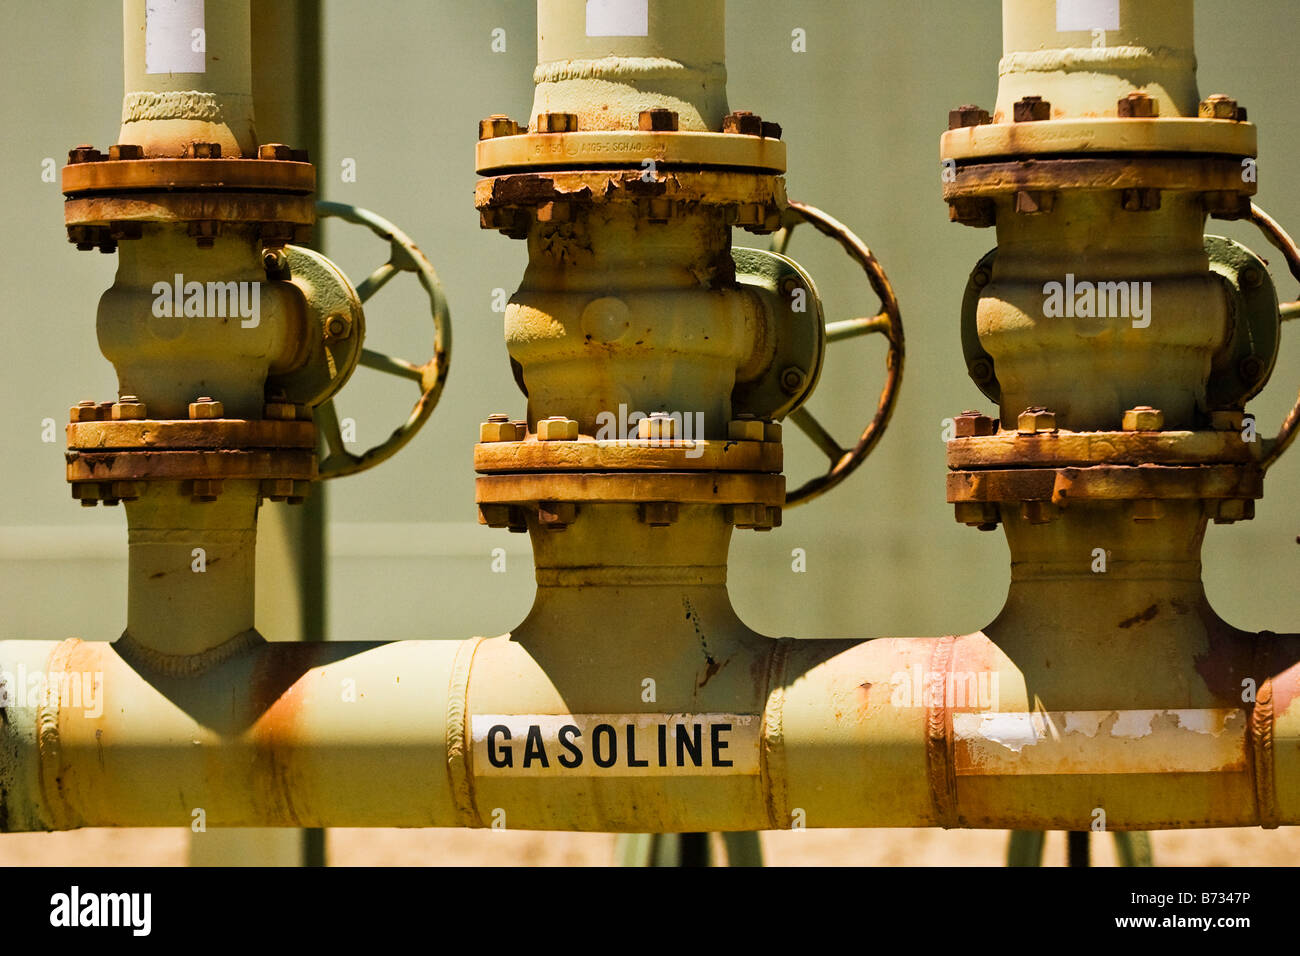 Gasoline faucet on a refinery pipeline. - Stock Image